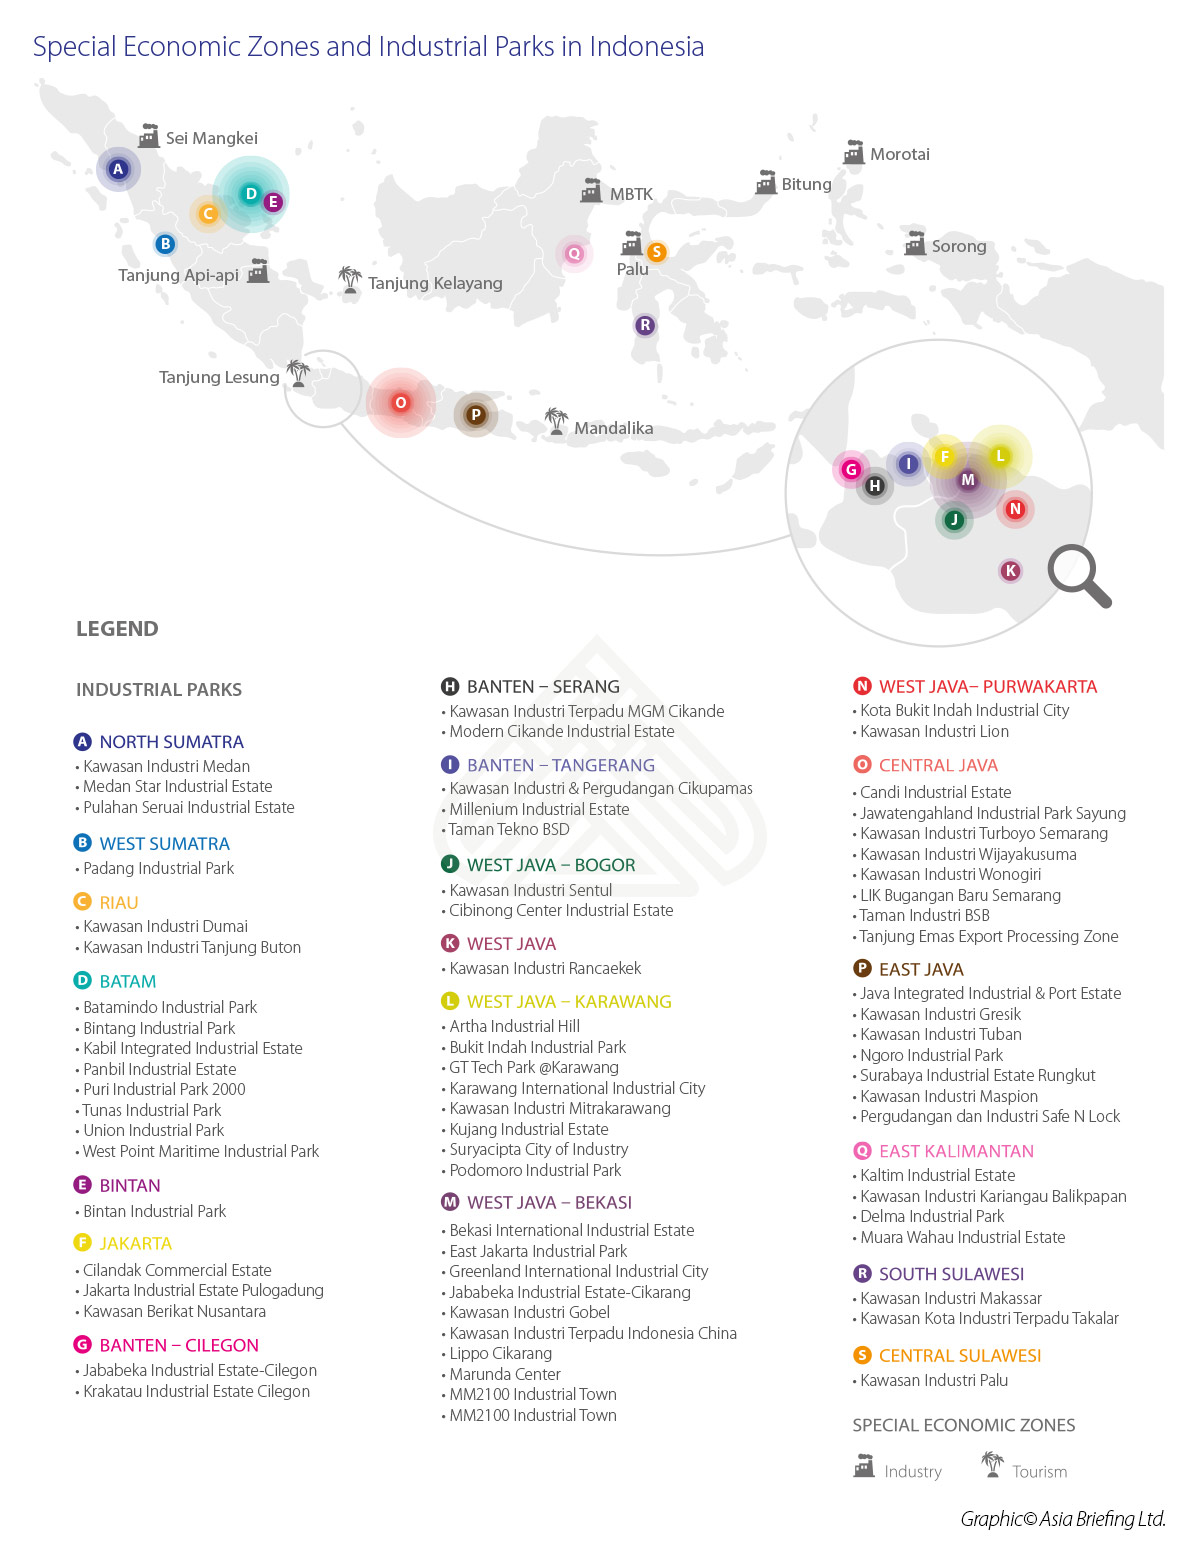 Special Economic Zones and Industrial Parks in Indonesia